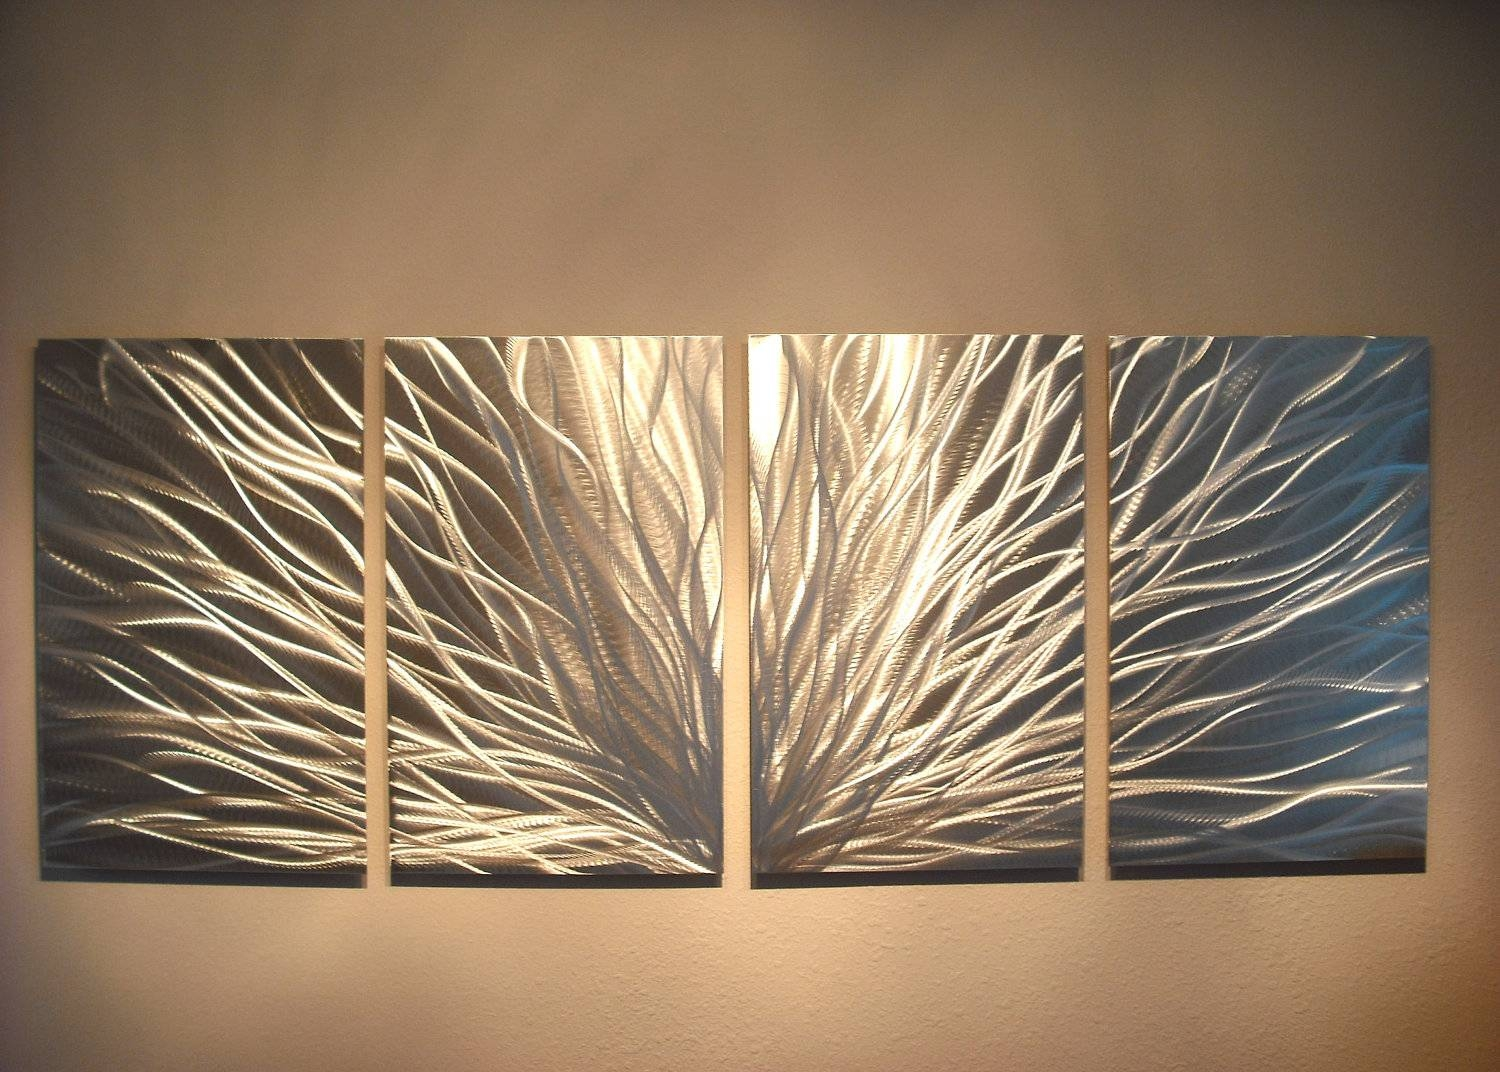 Radiance – Abstract Metal Wall Art Contemporary Modern Decor In 2017 Metal Wall Art Decor And Sculptures (Gallery 5 of 20)